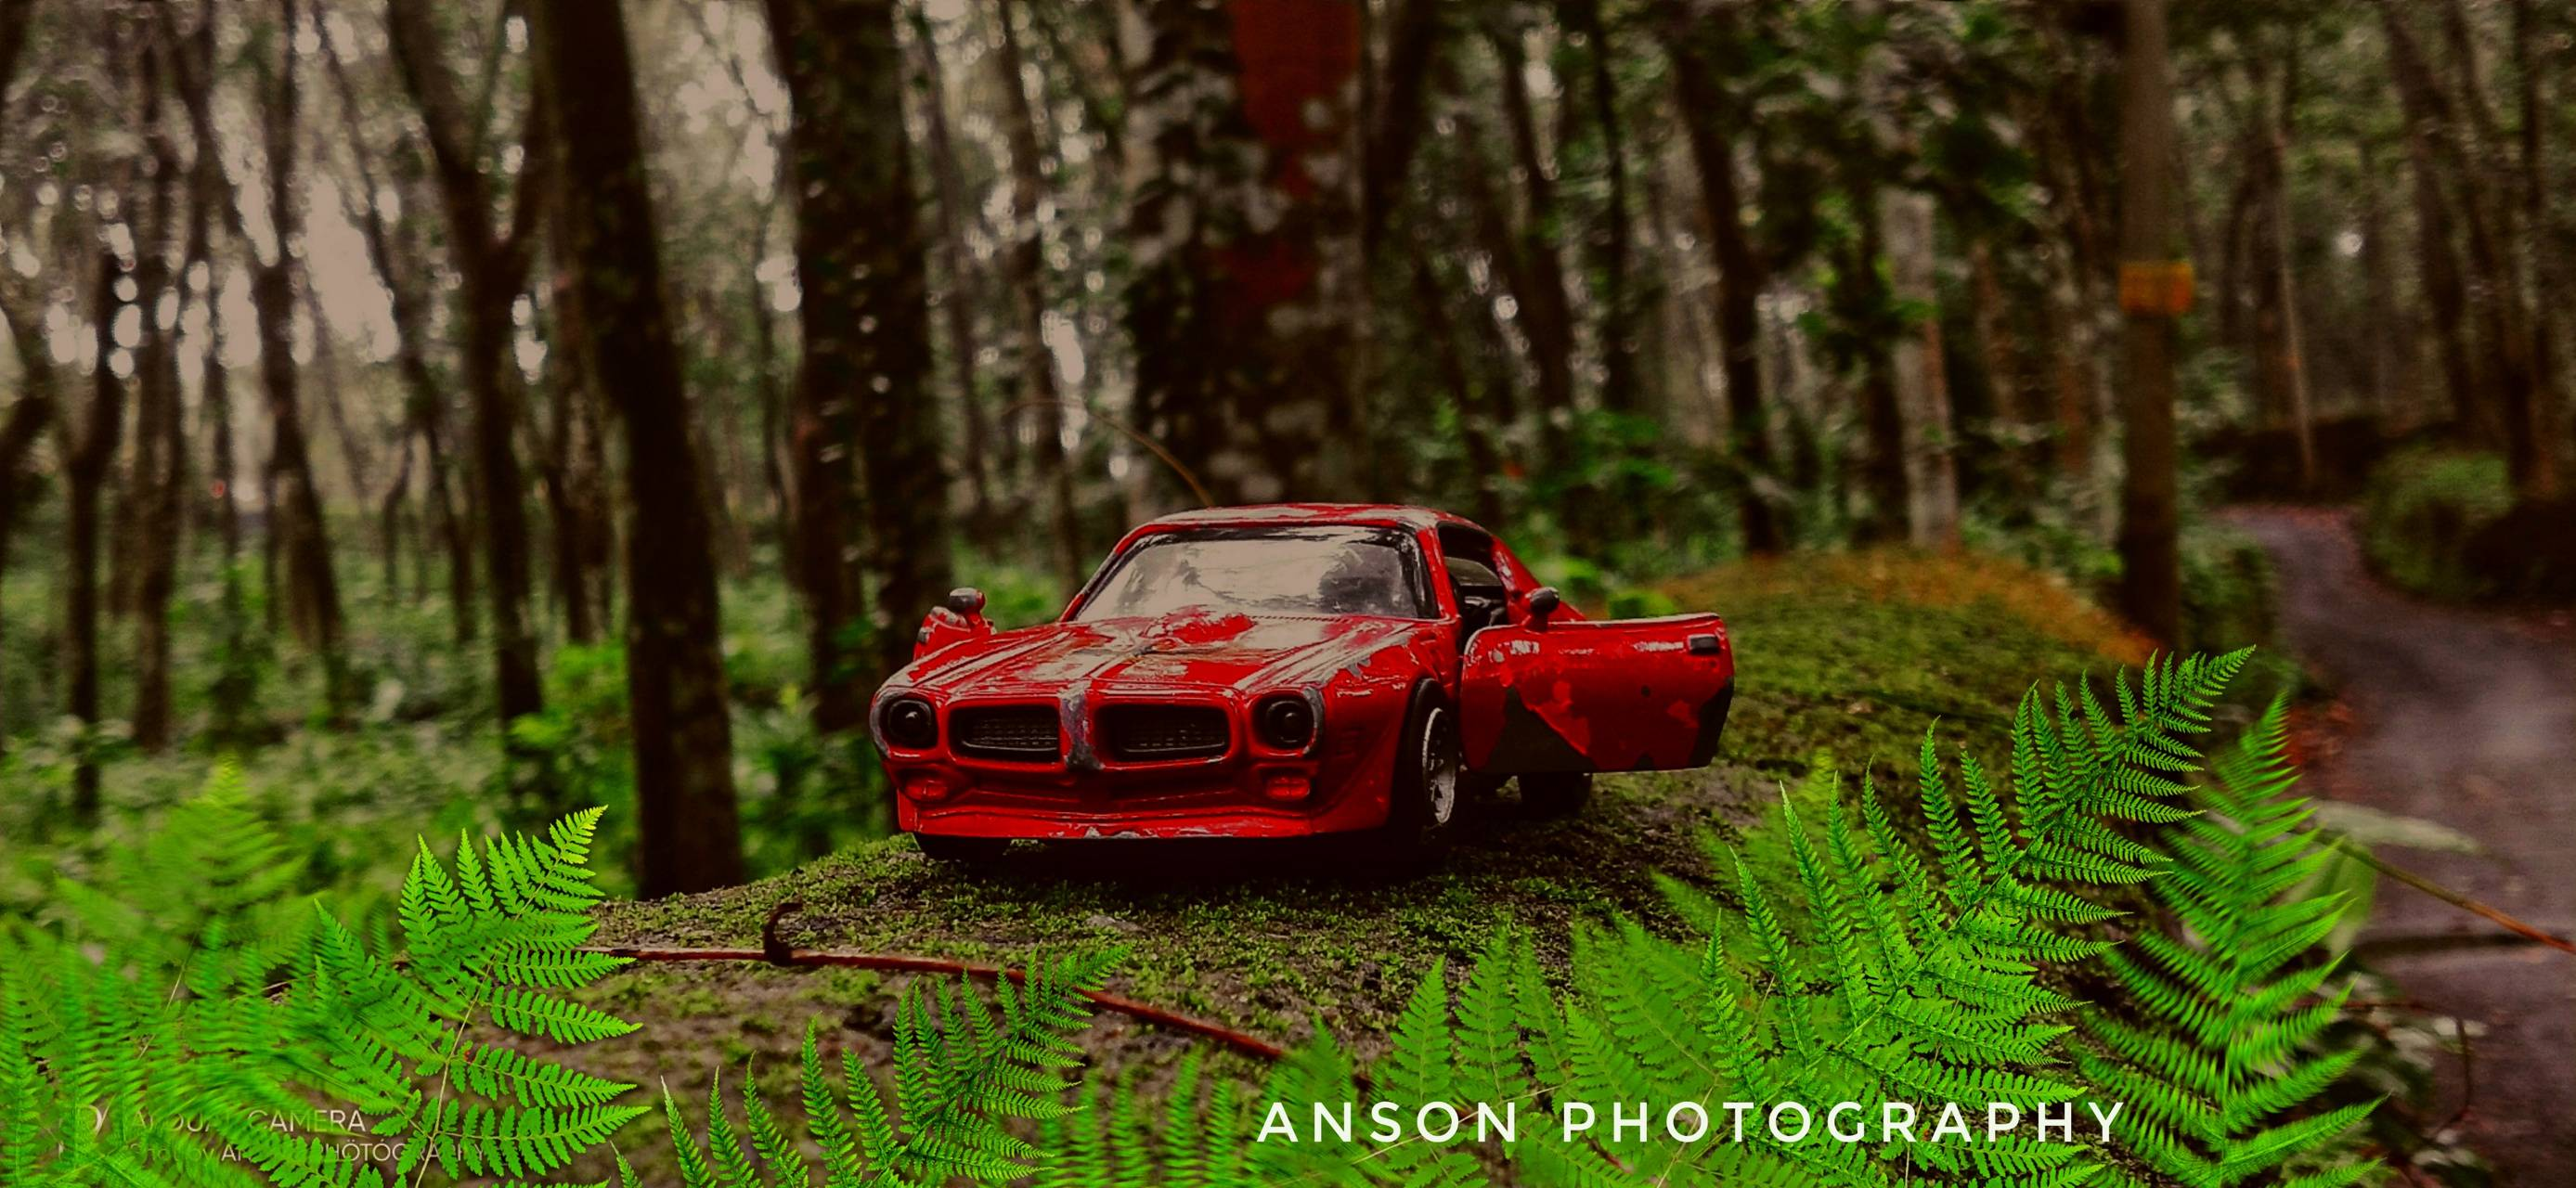 Toys photography